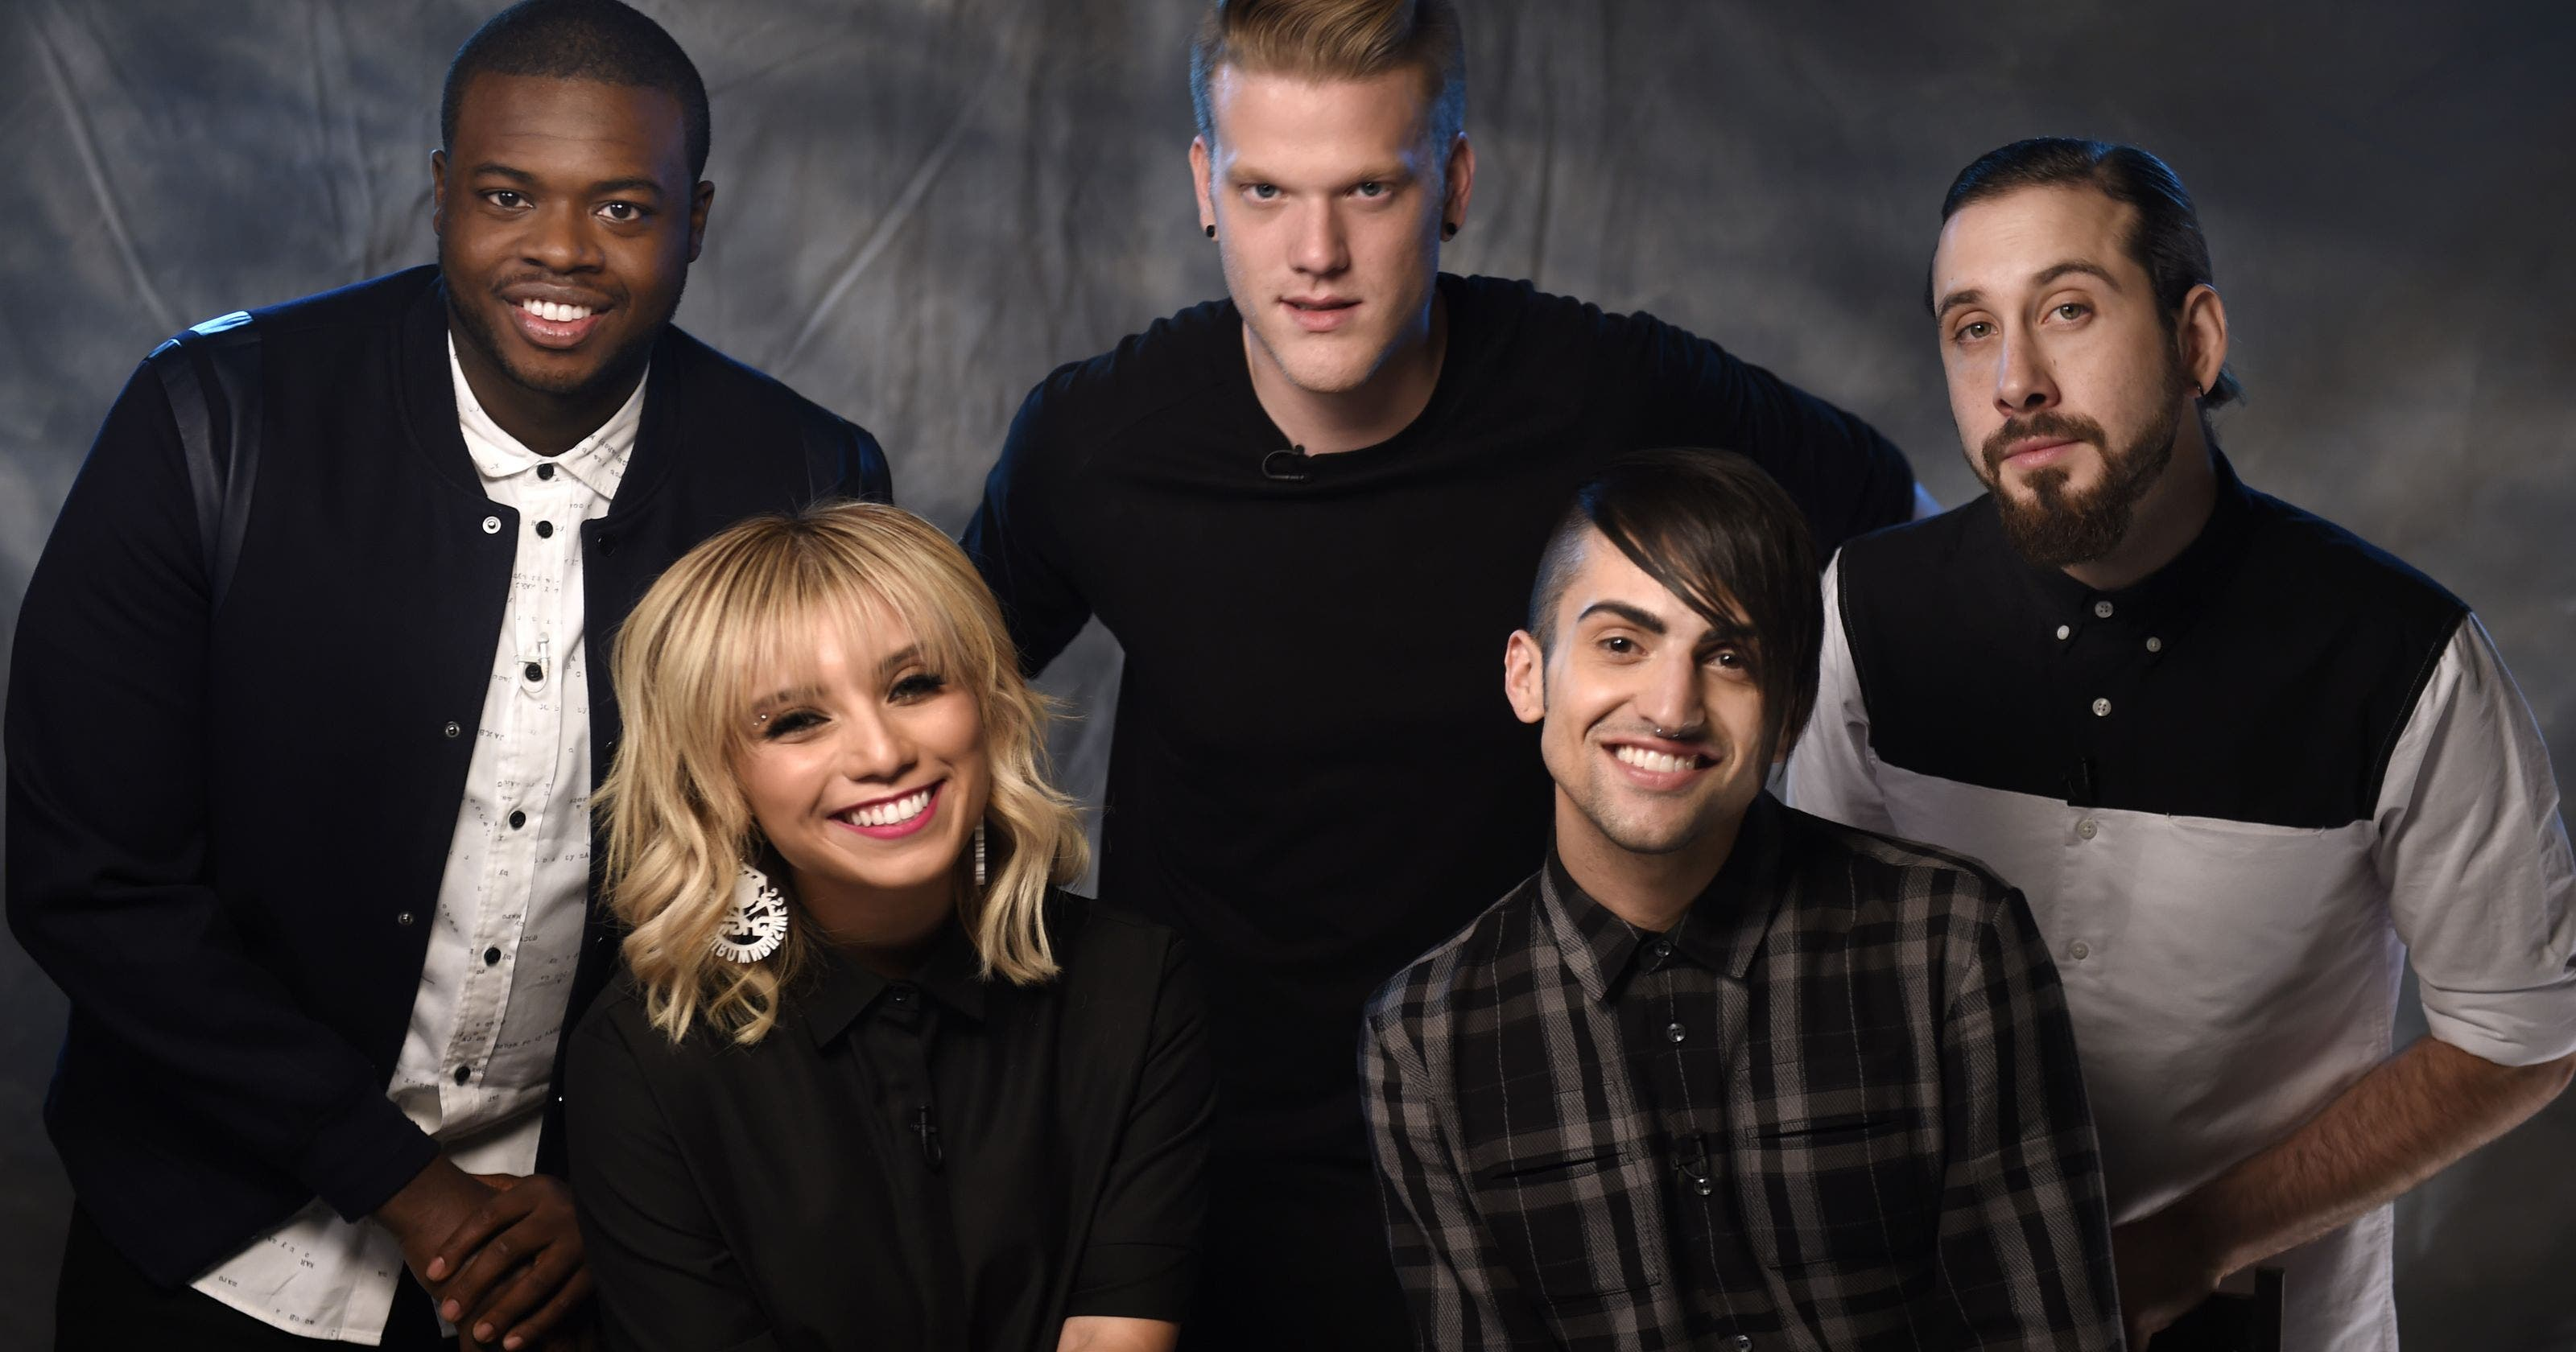 5 Reasons To Watch The Pentatonix Concert This Saturday